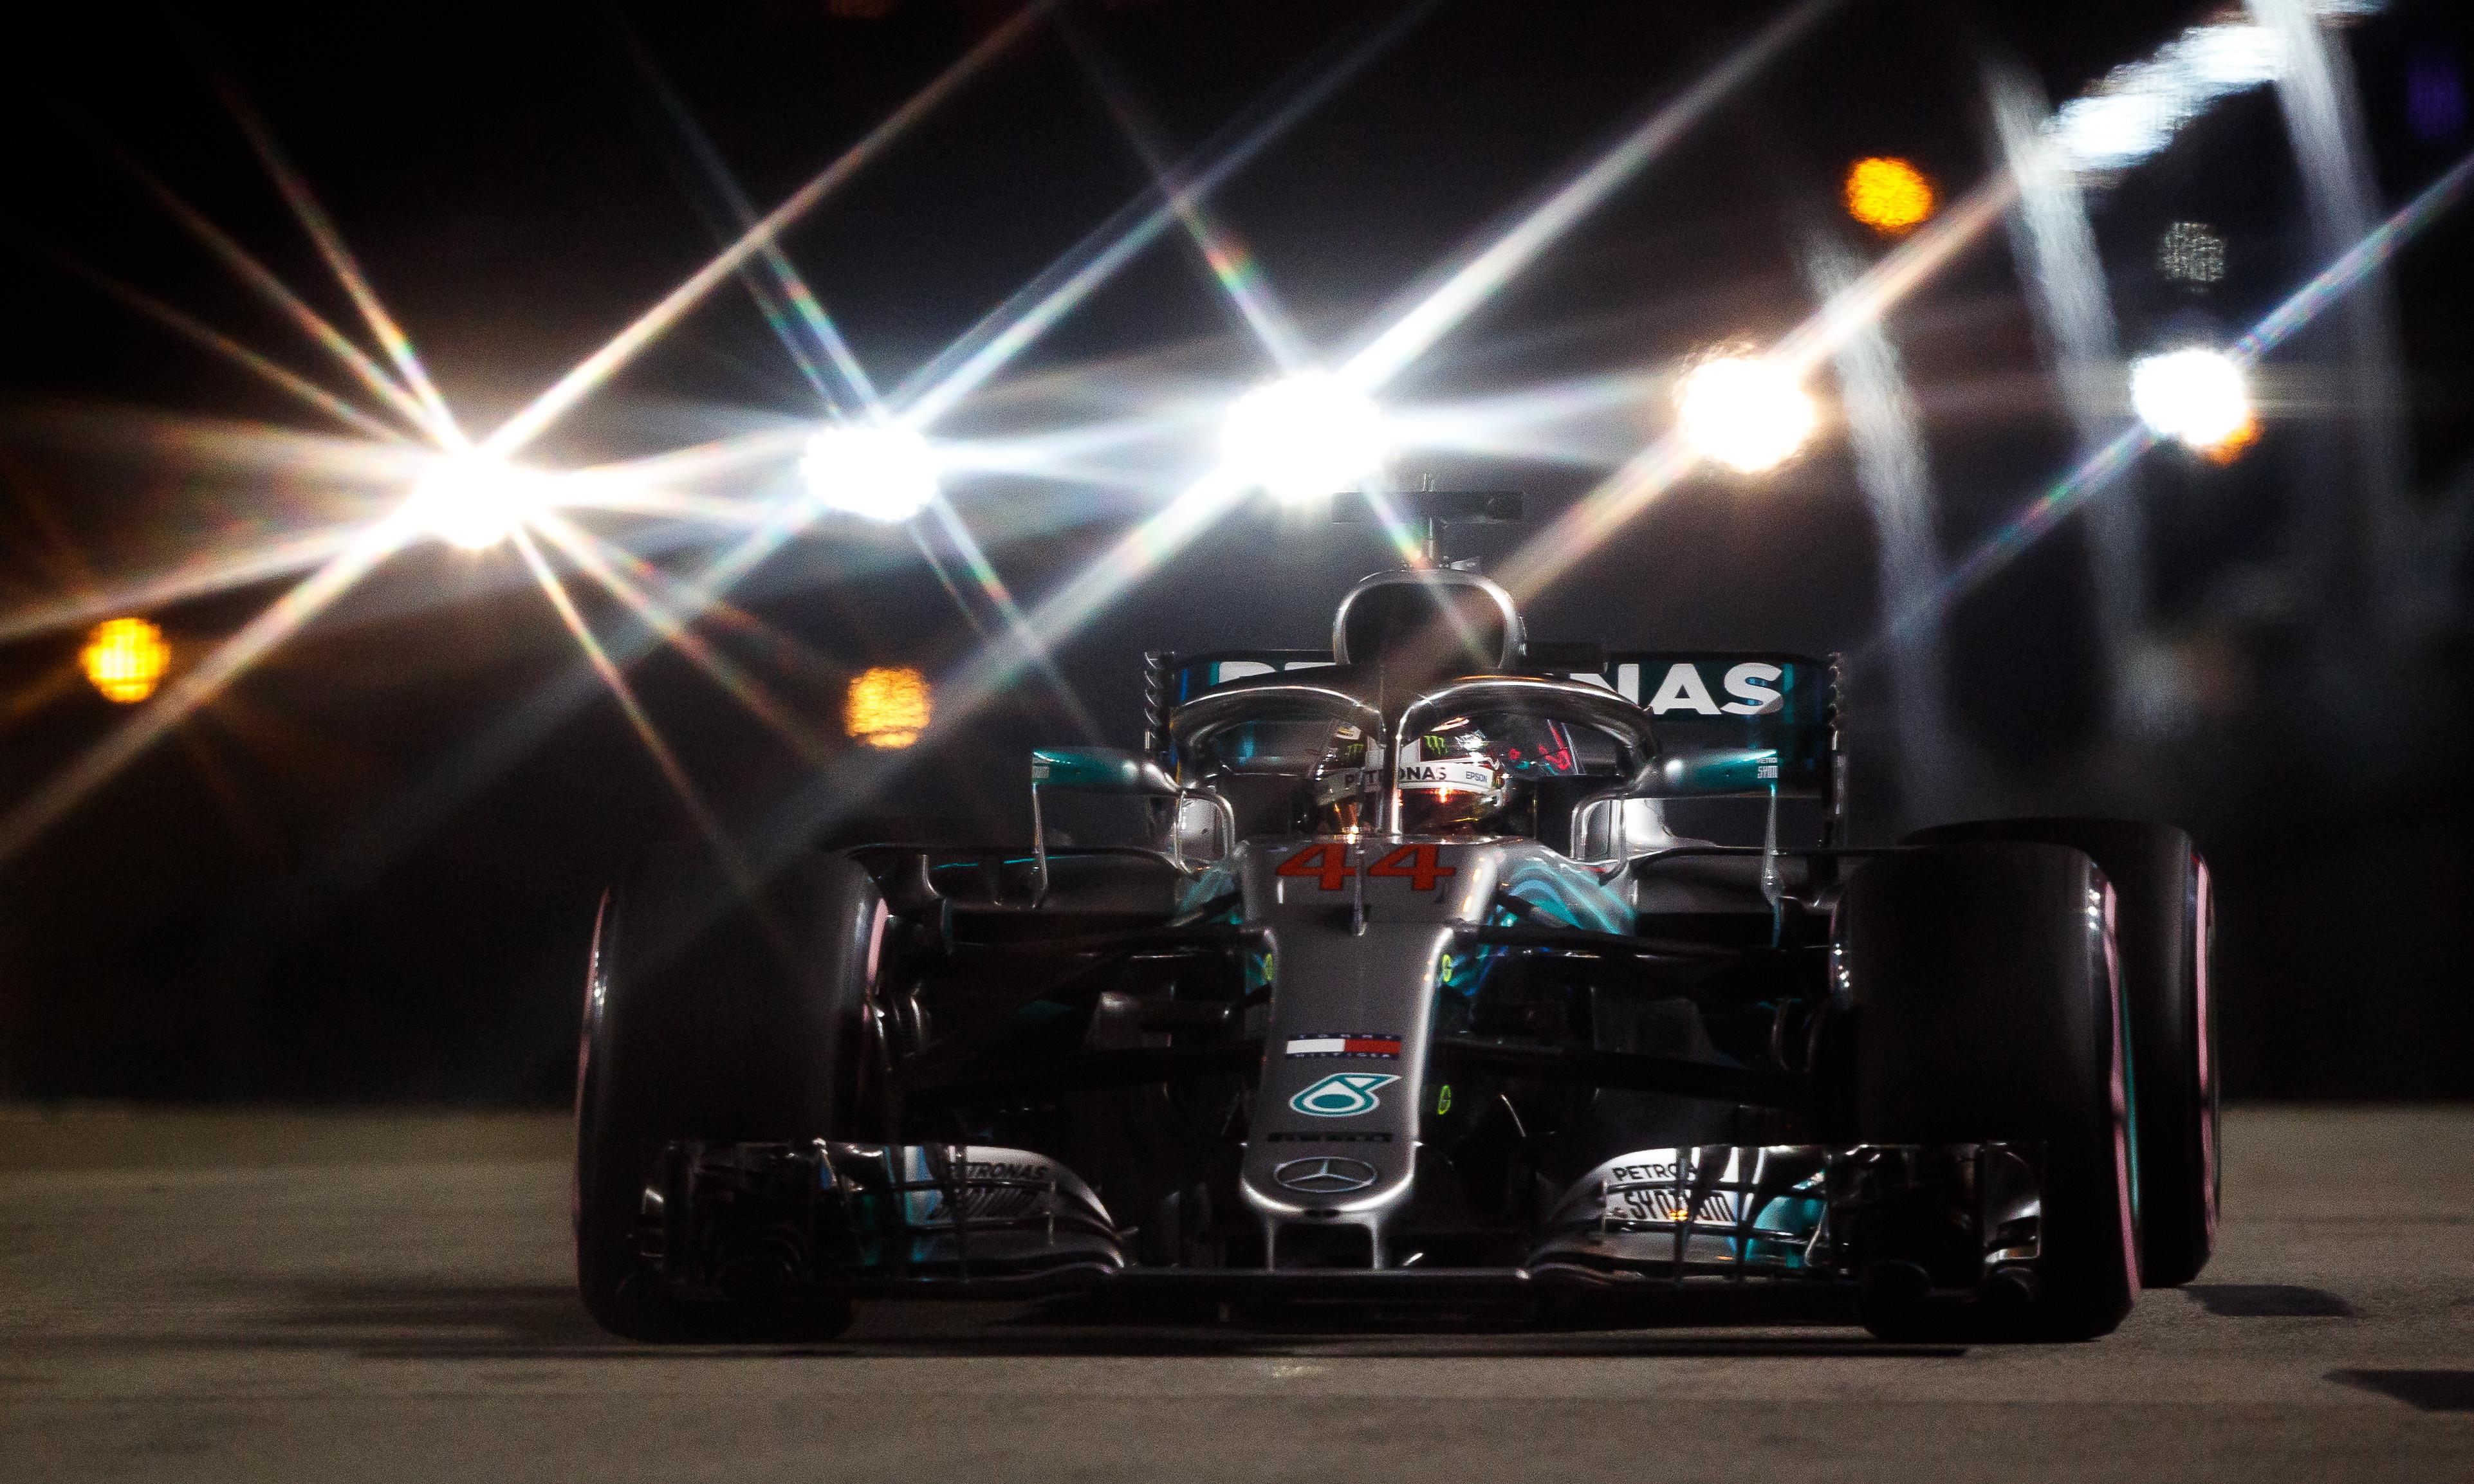 Spectacle of Singapore offers F1's best chance of attracting a new audience